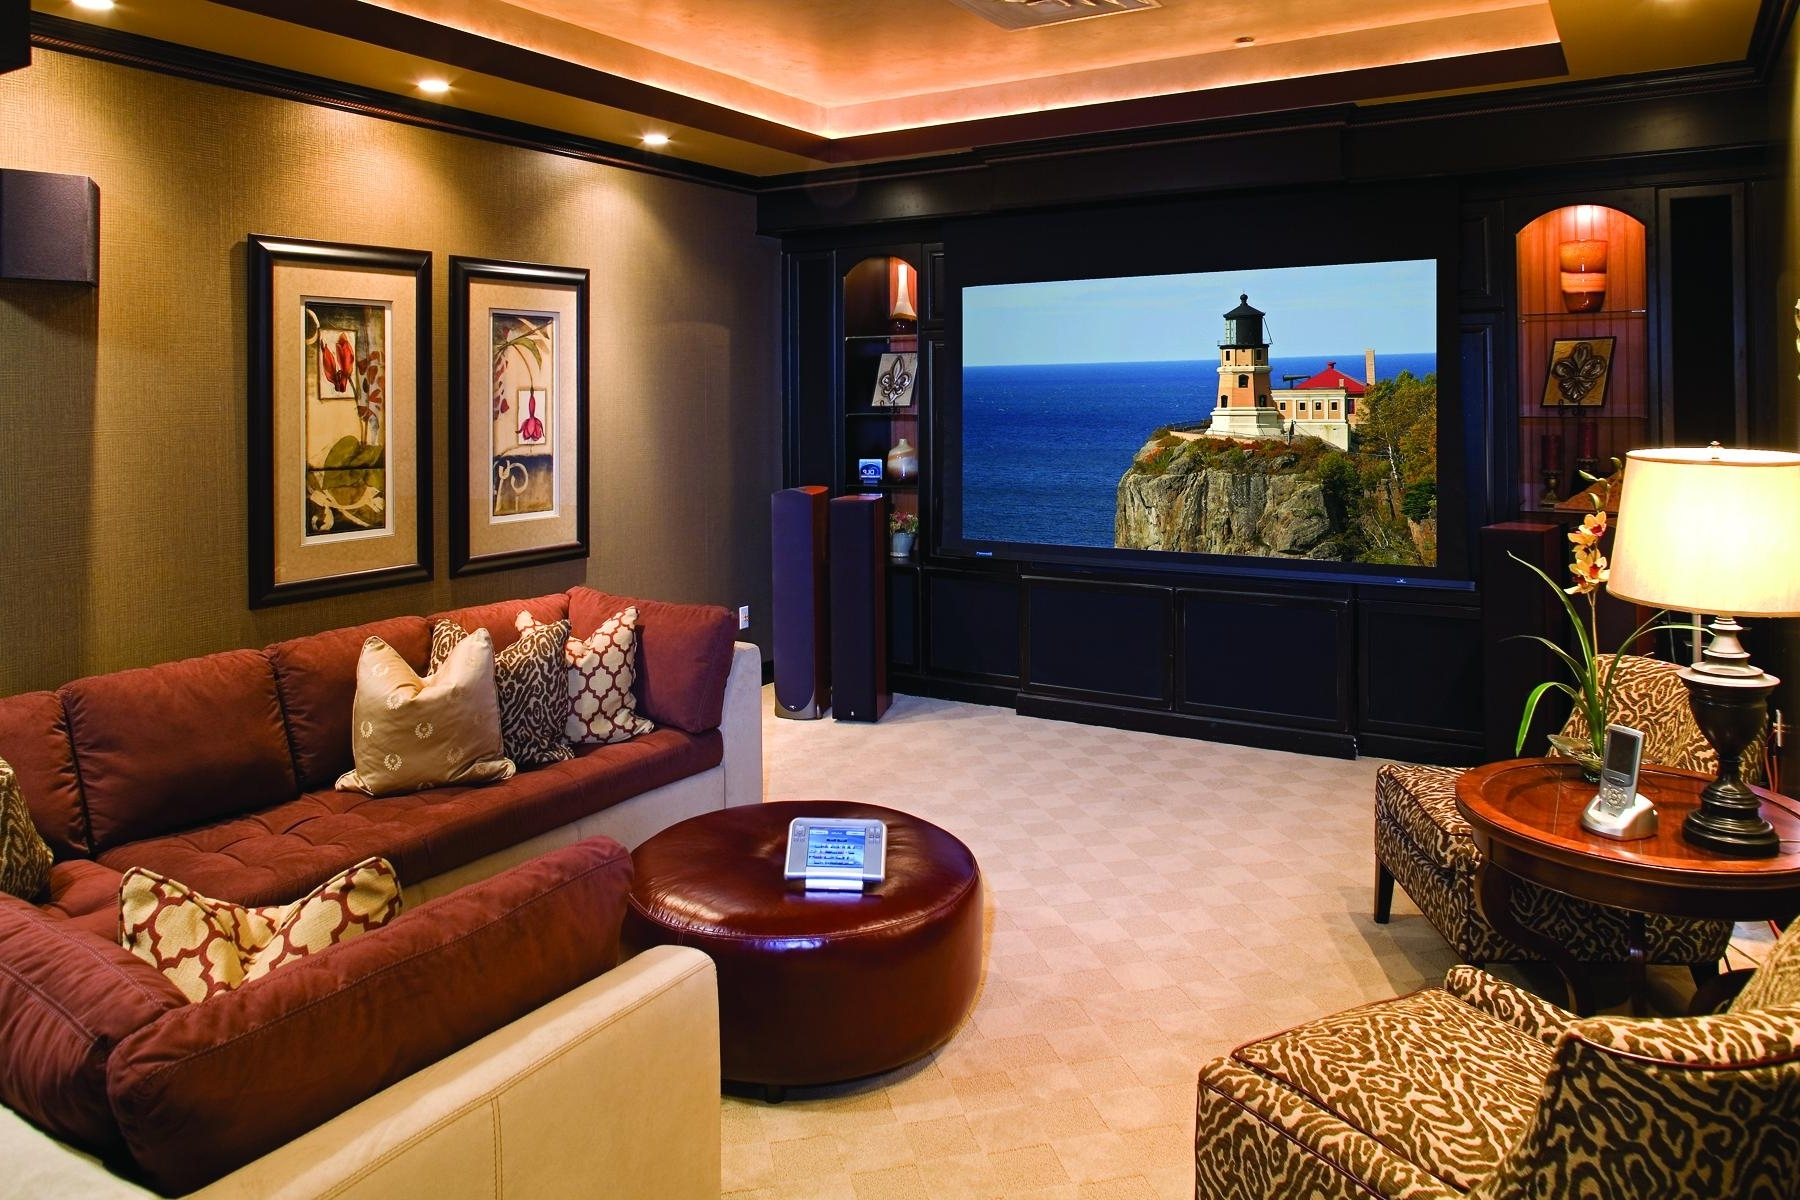 Most Popular Movie Poster Wall Art Glass Coffee Table Basement Home Theater Intended For Home Theater Wall Art (View 5 of 15)